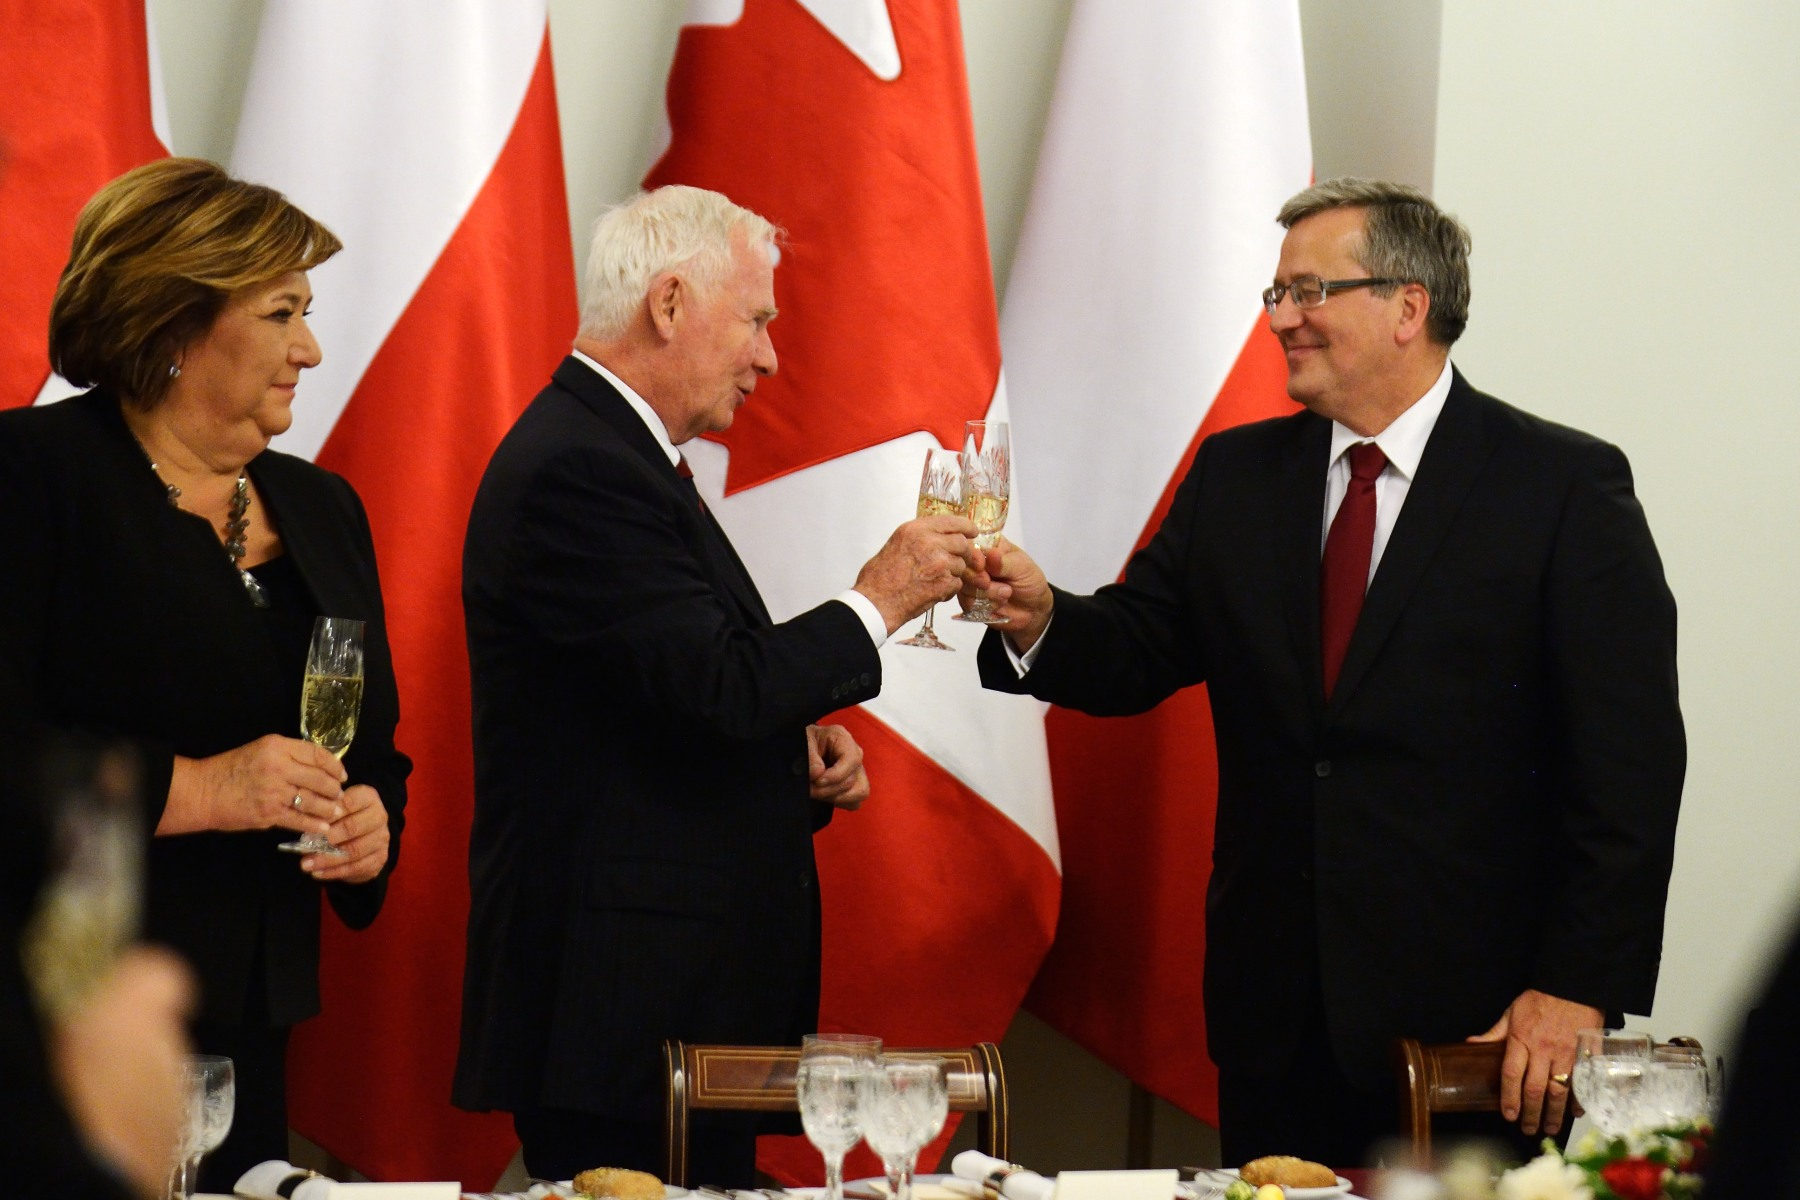 """I would now like to raise my glass to Poland and Canada's continued friendship,"" said His Excellency."